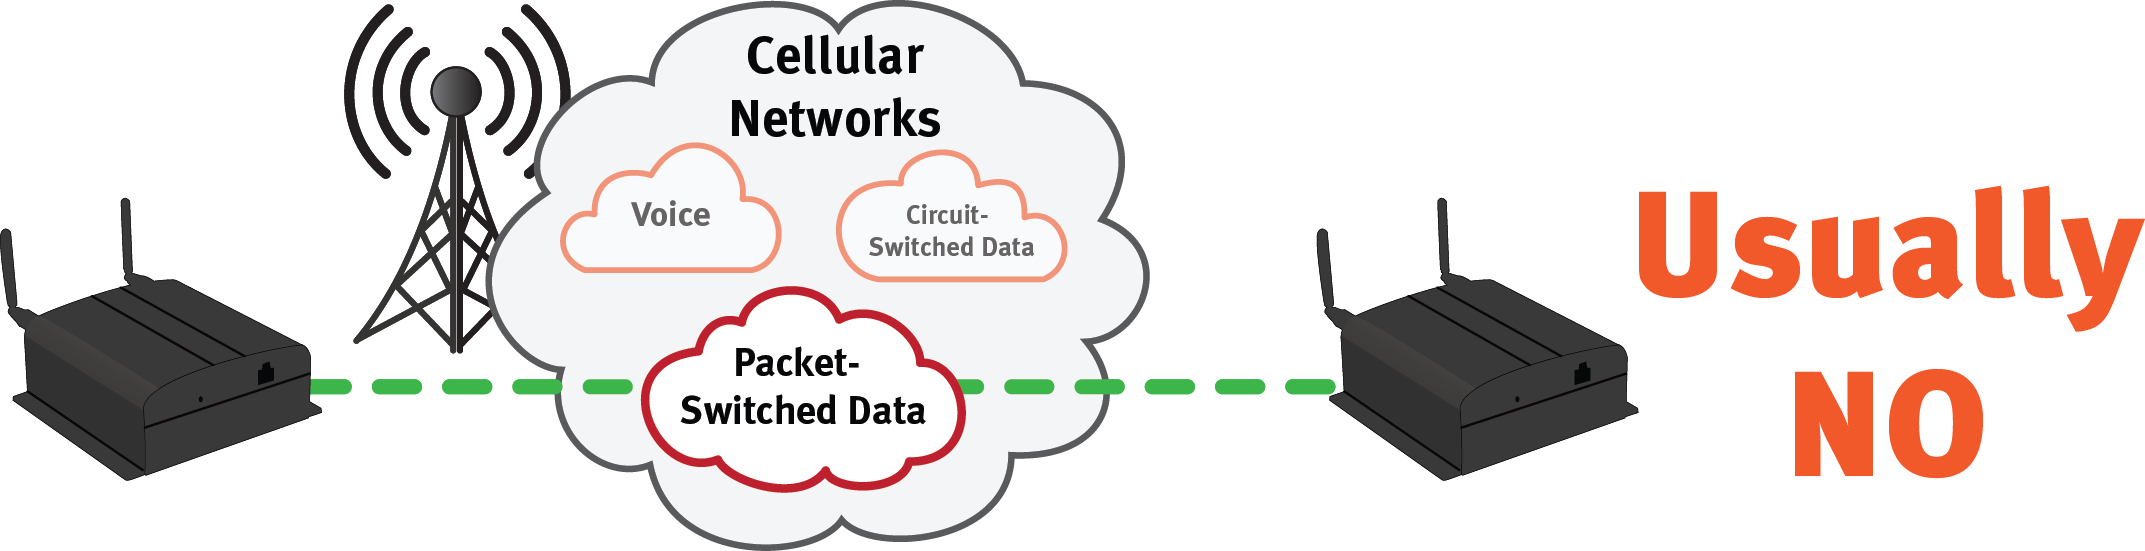 Cellular Data Network- Packet Switched Data does not do Peer-to-Peer